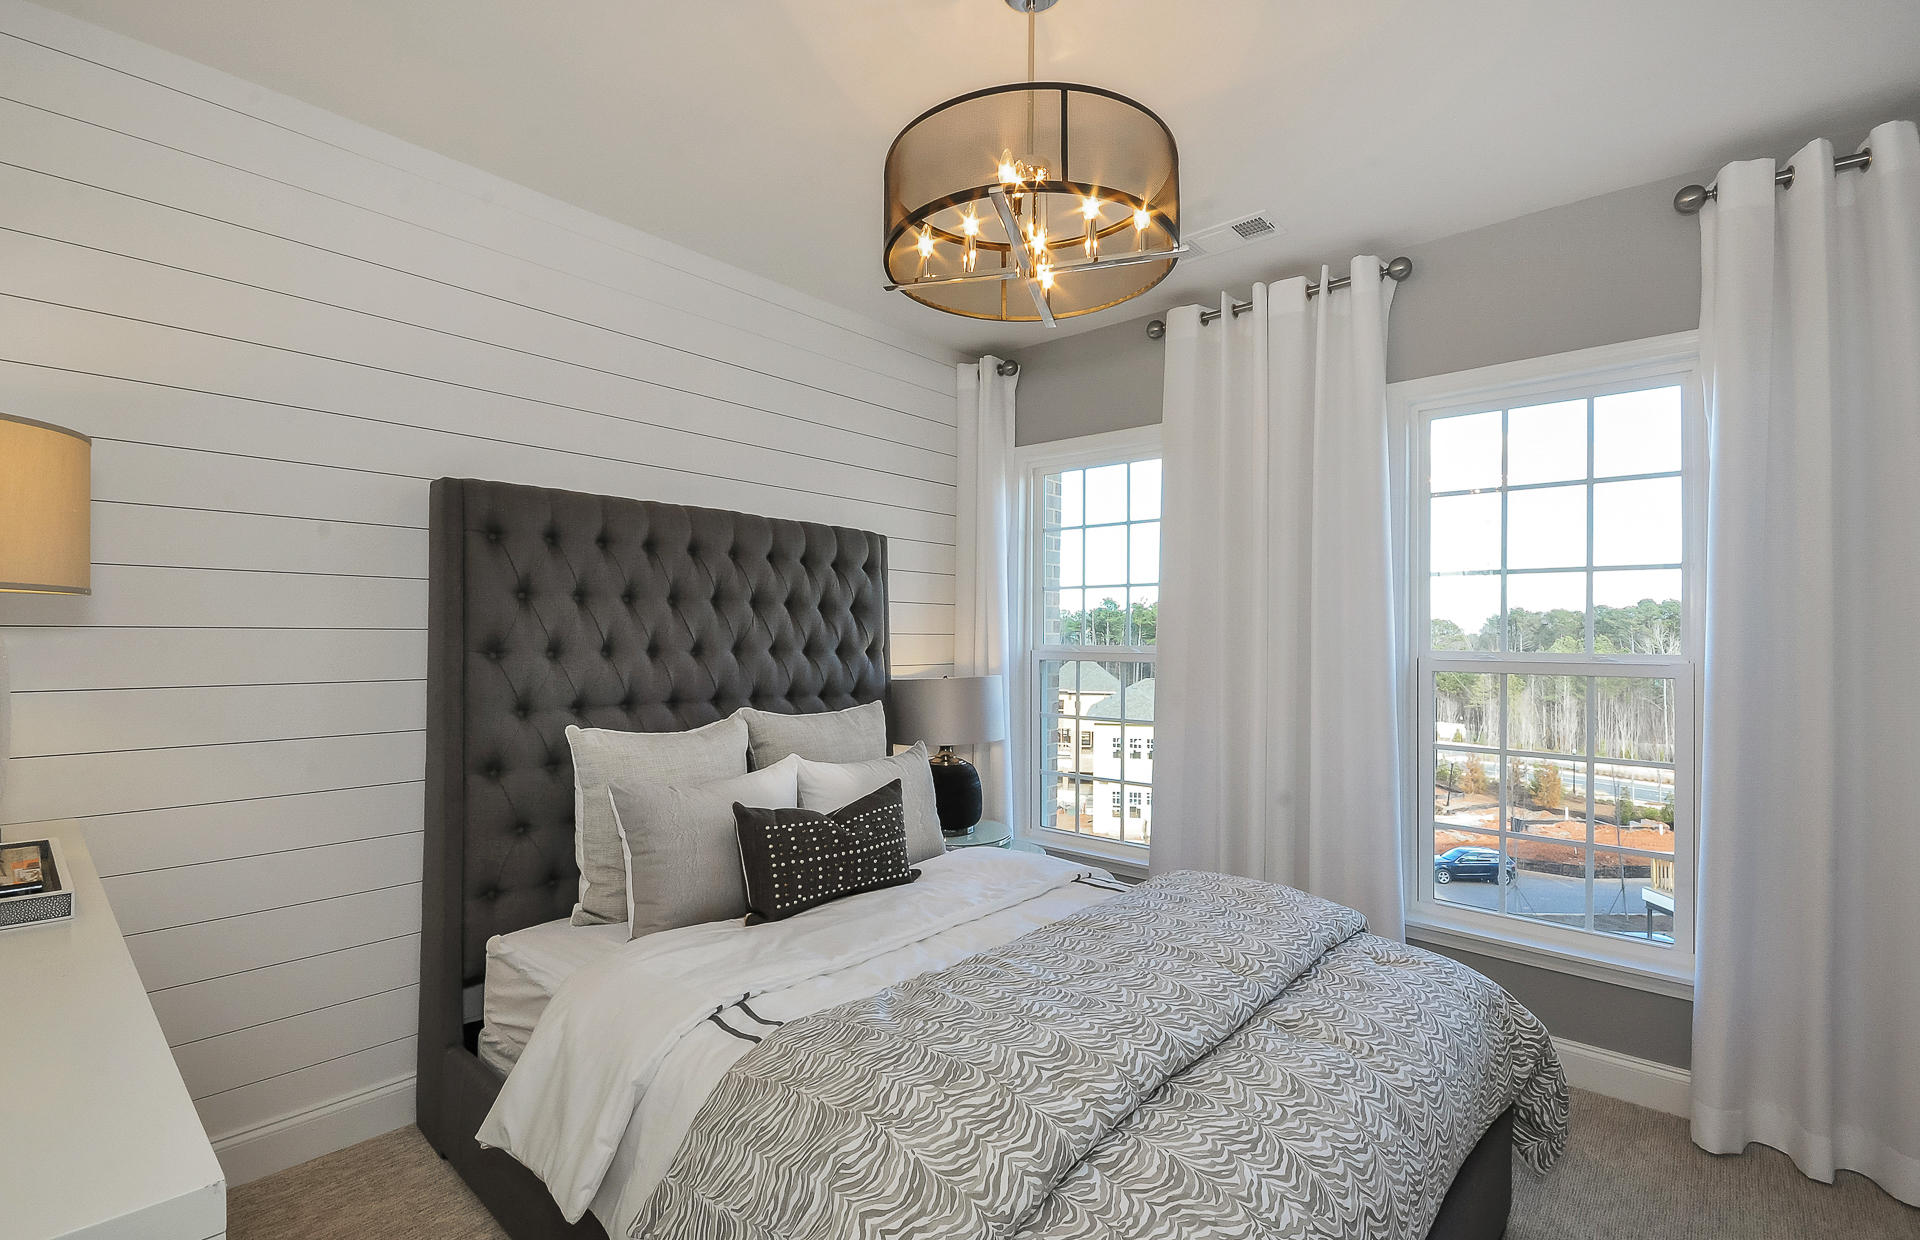 The Walk at Braeden by Pulte Homes image 2